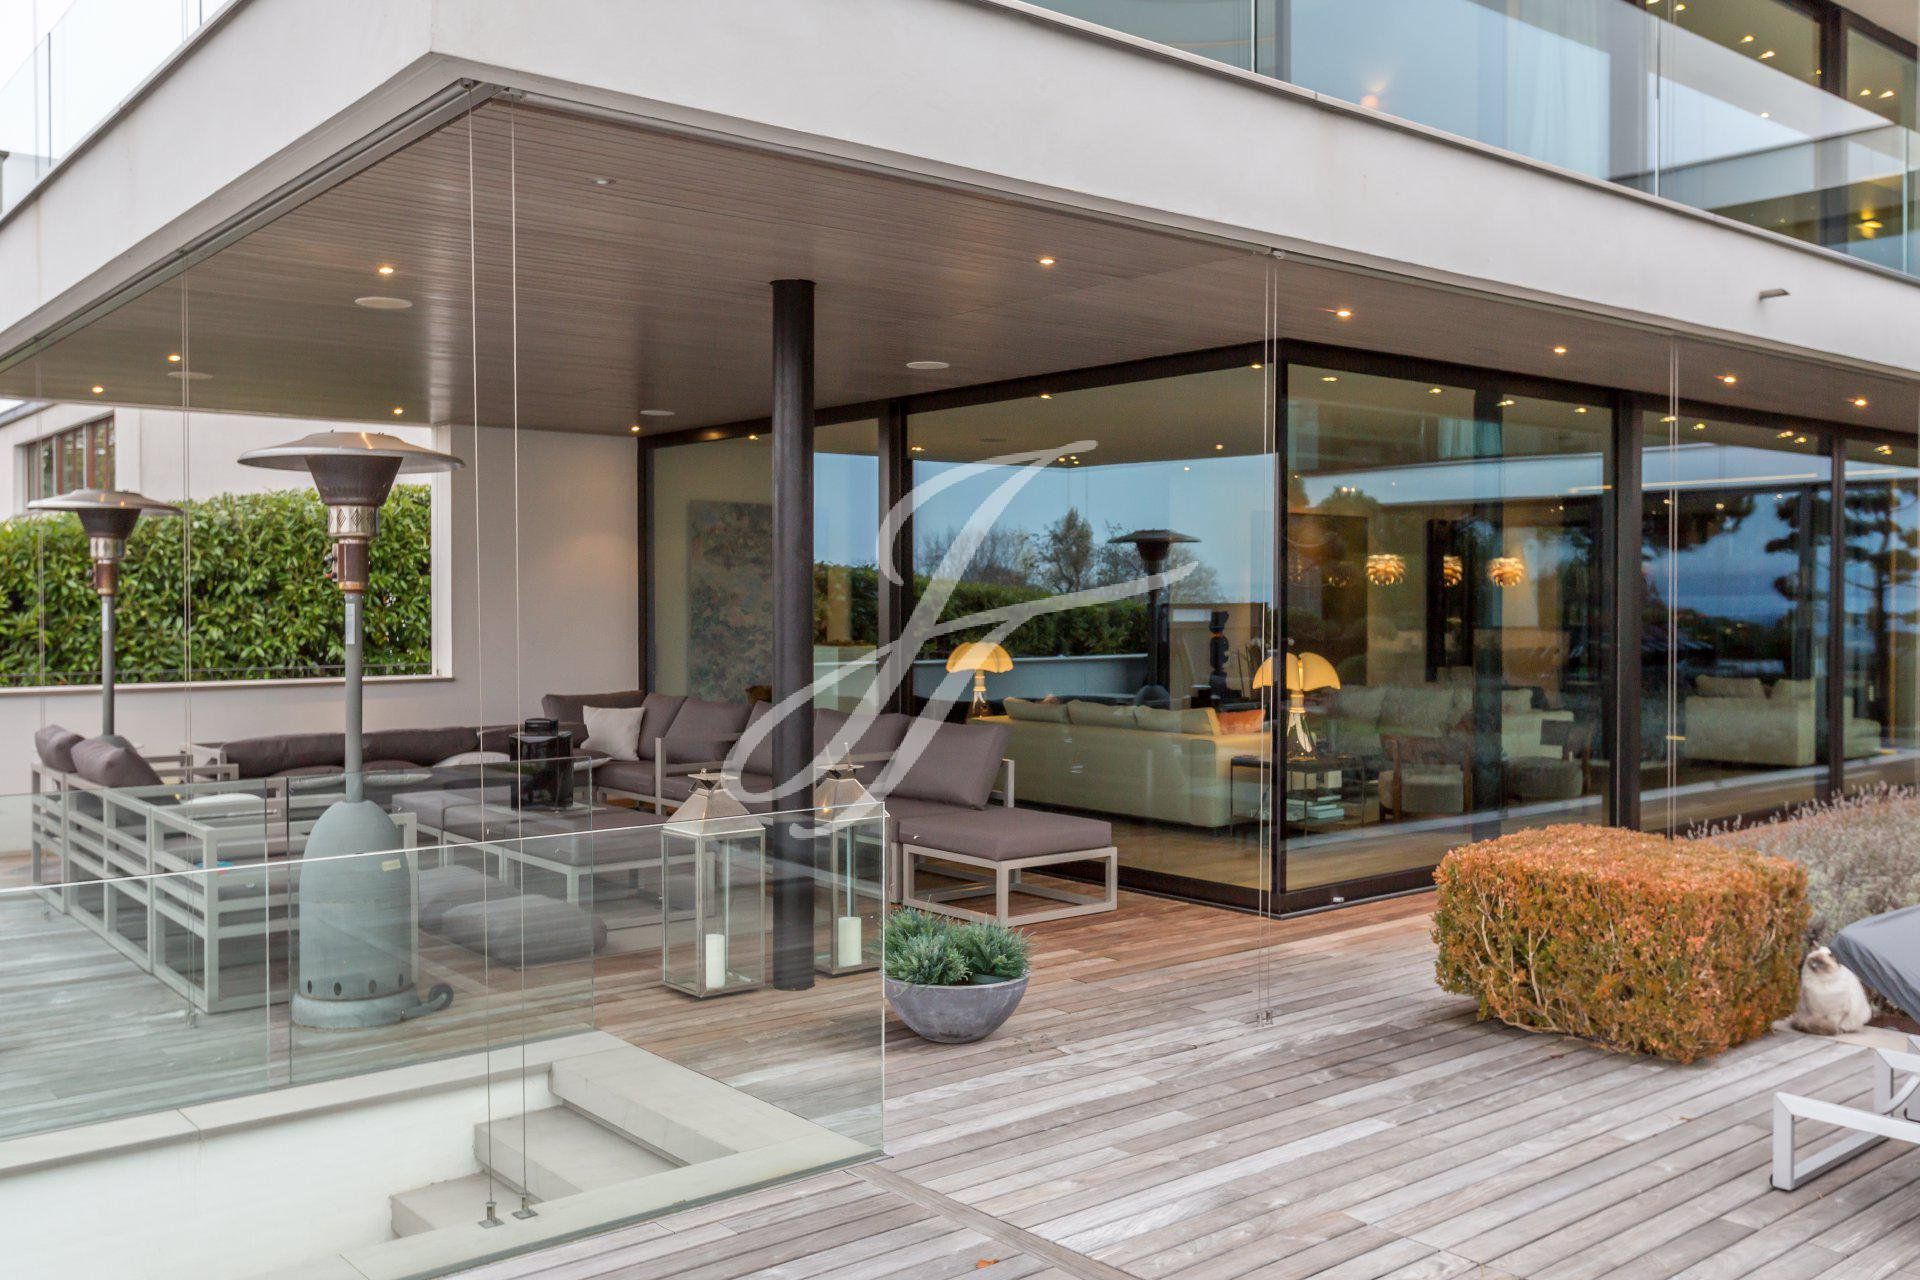 Luxury property for sale in Anières, Switzerland |FINEST RESIDENCES